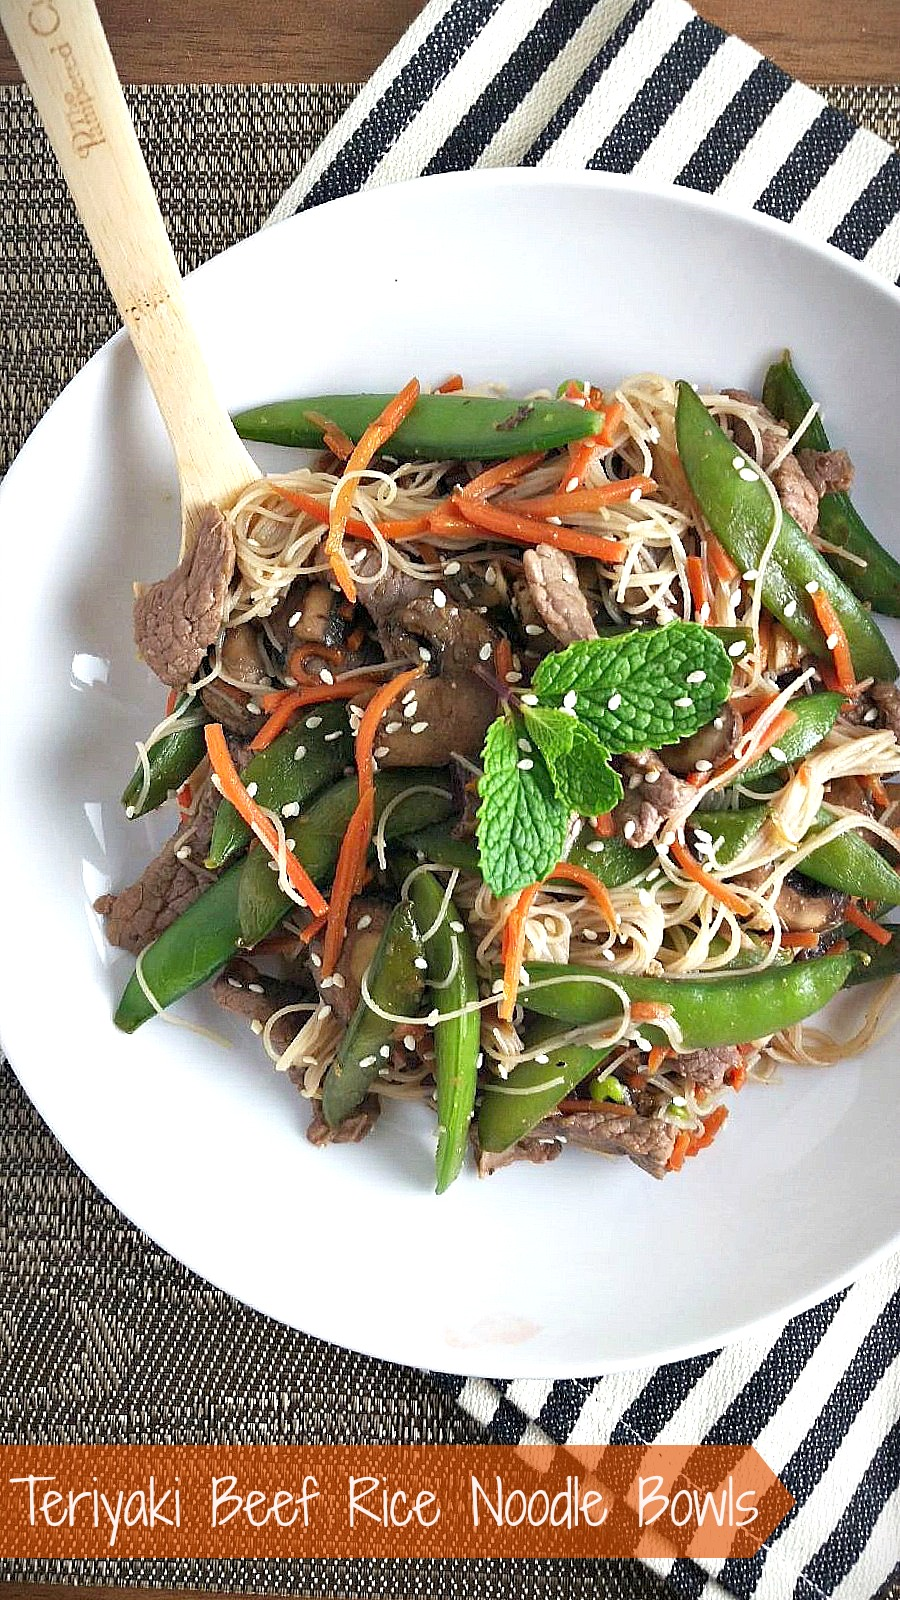 Teriyaki Beef Rice Noodle Bowls | Dishing Out Health